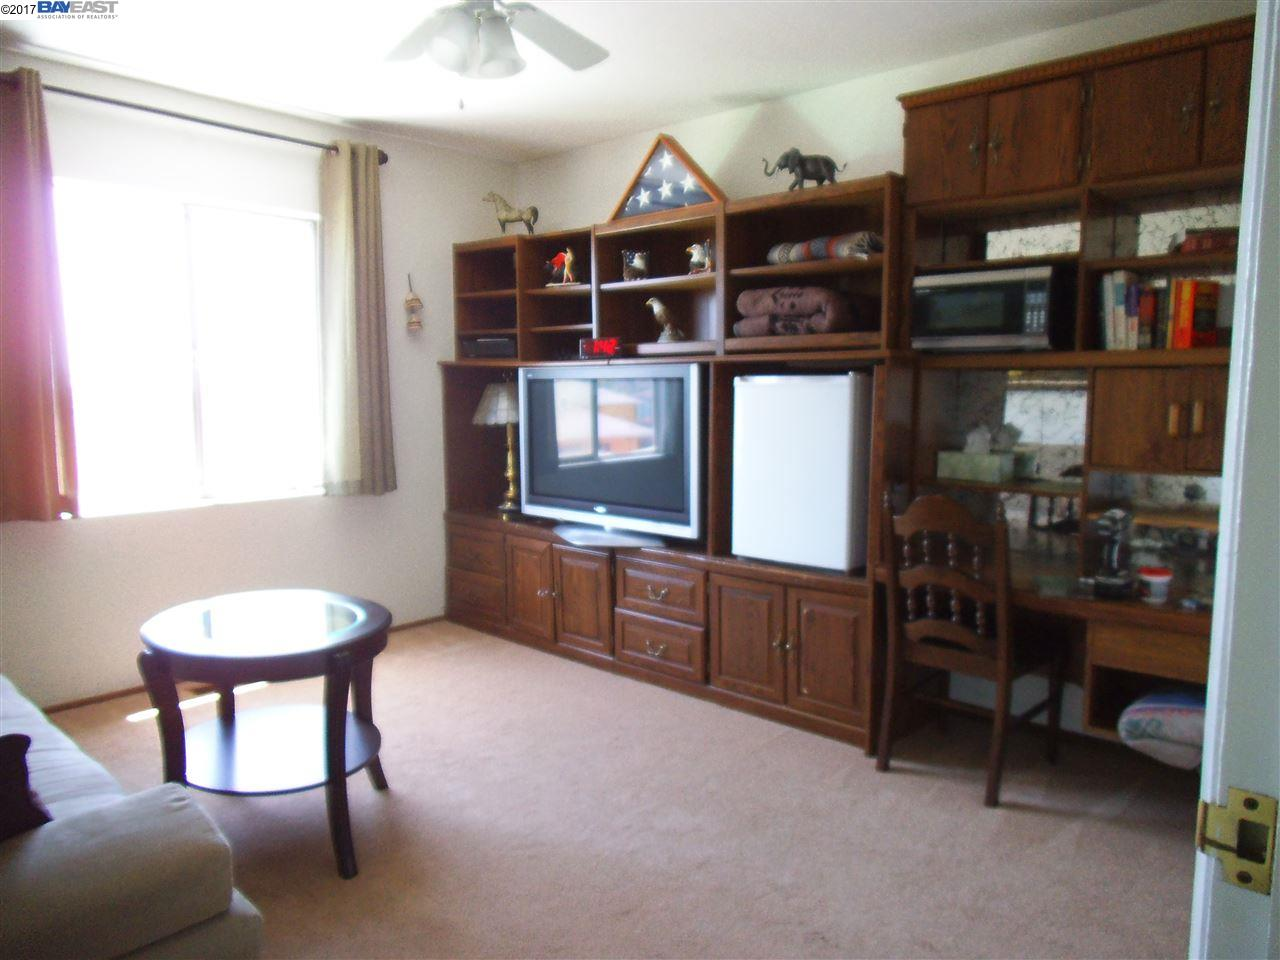 Additional photo for property listing at 17280 Los Banos Street  Hayward, カリフォルニア 94541 アメリカ合衆国